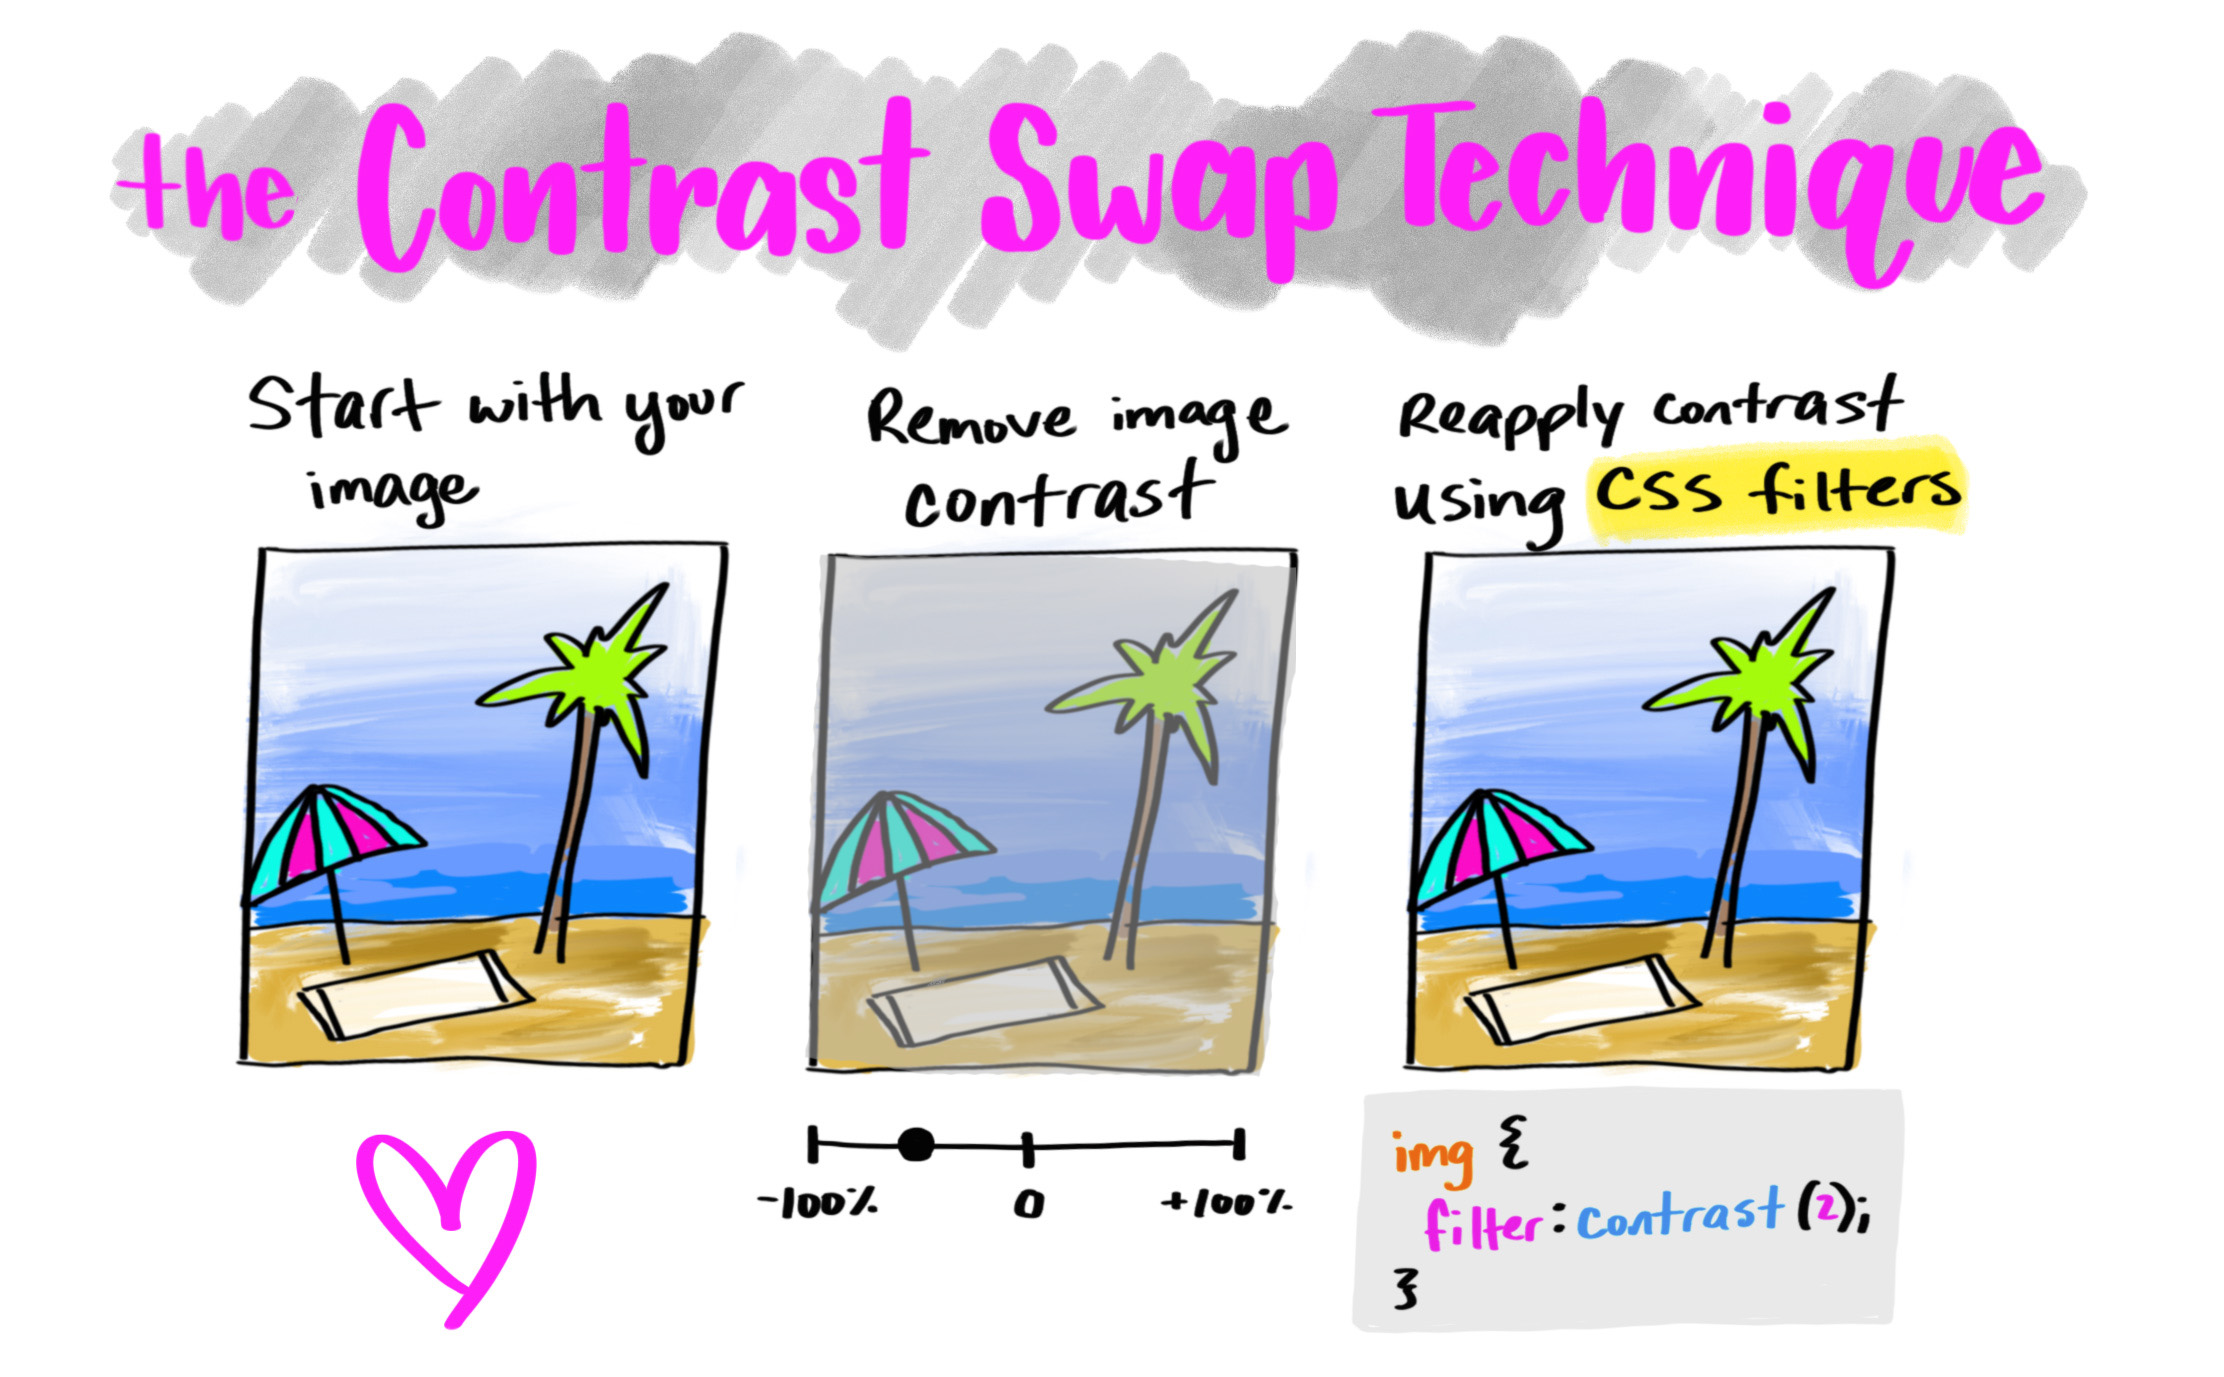 The Contrast Swap Technique: Improved Image Performance with CSS Filters | CSS-Tricks